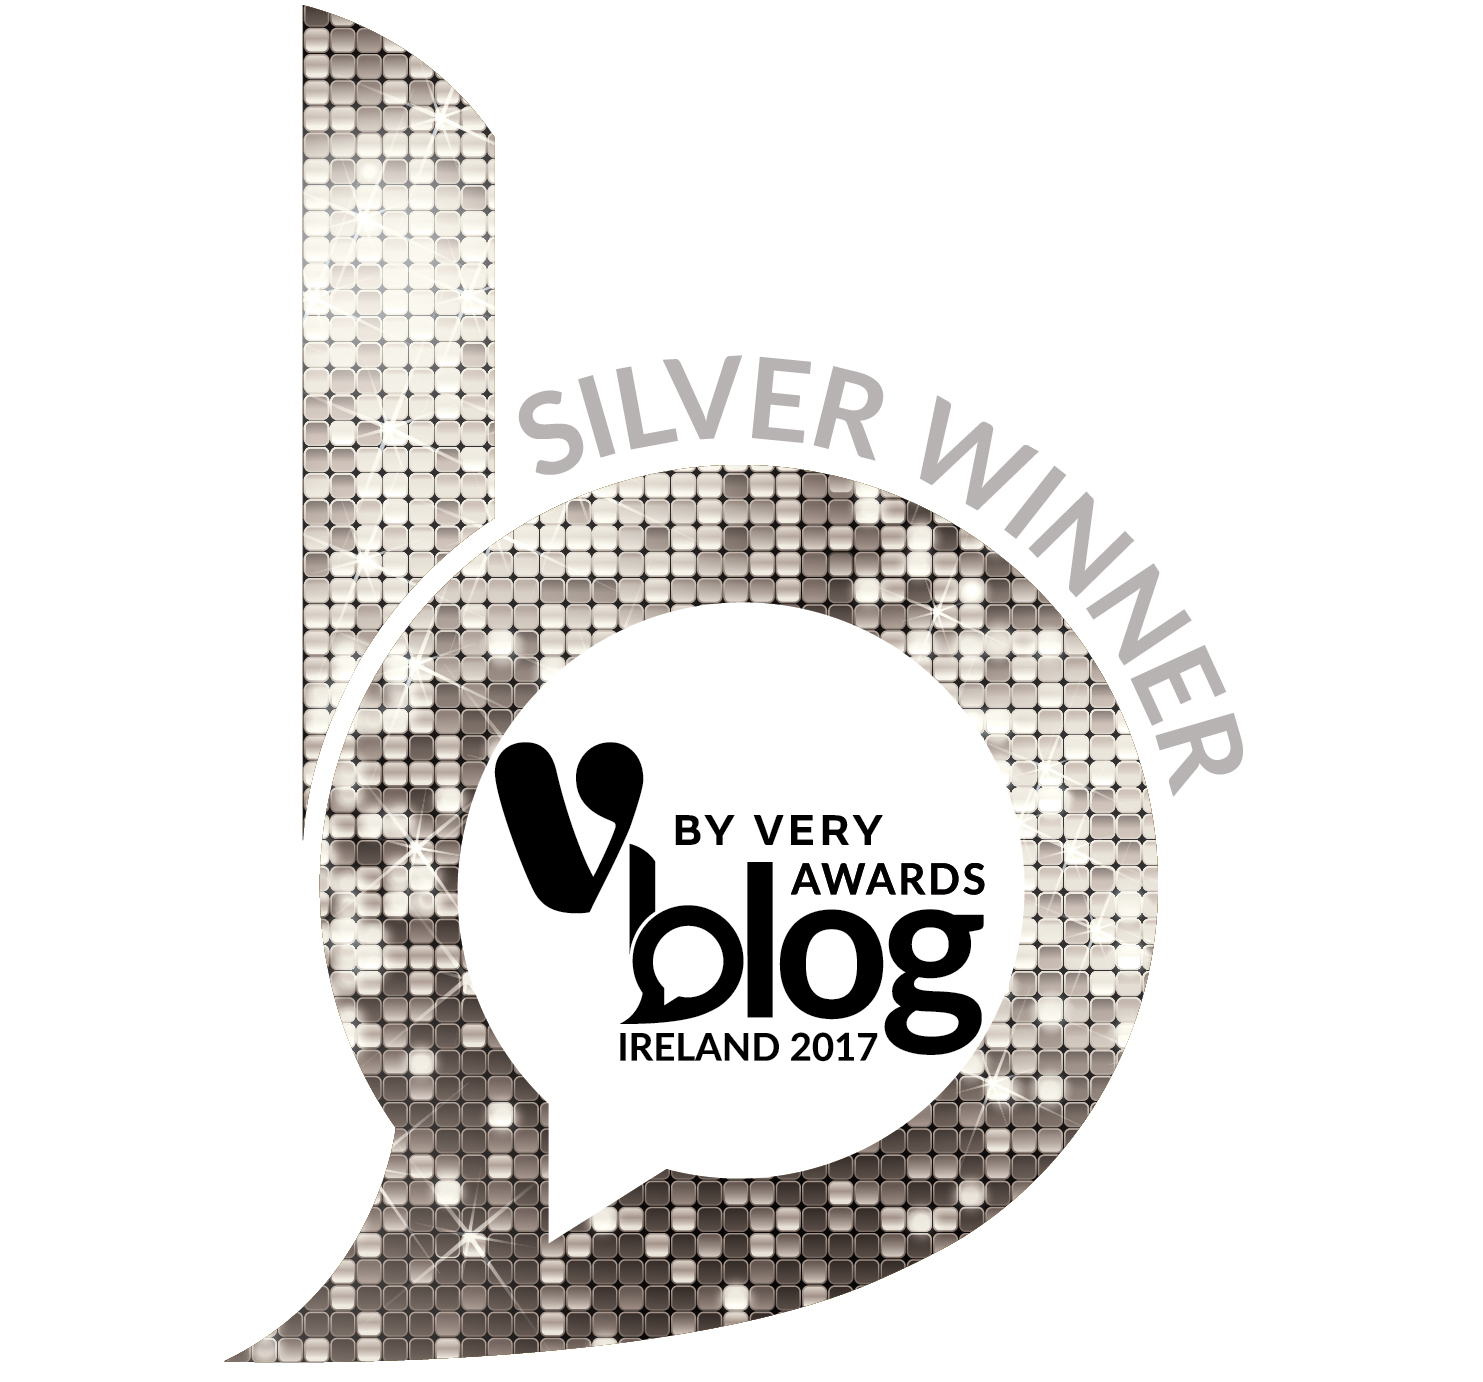 This month I got notification that I received a Silver award in the Photography blog catagory of the Irish Blog awards for 2017